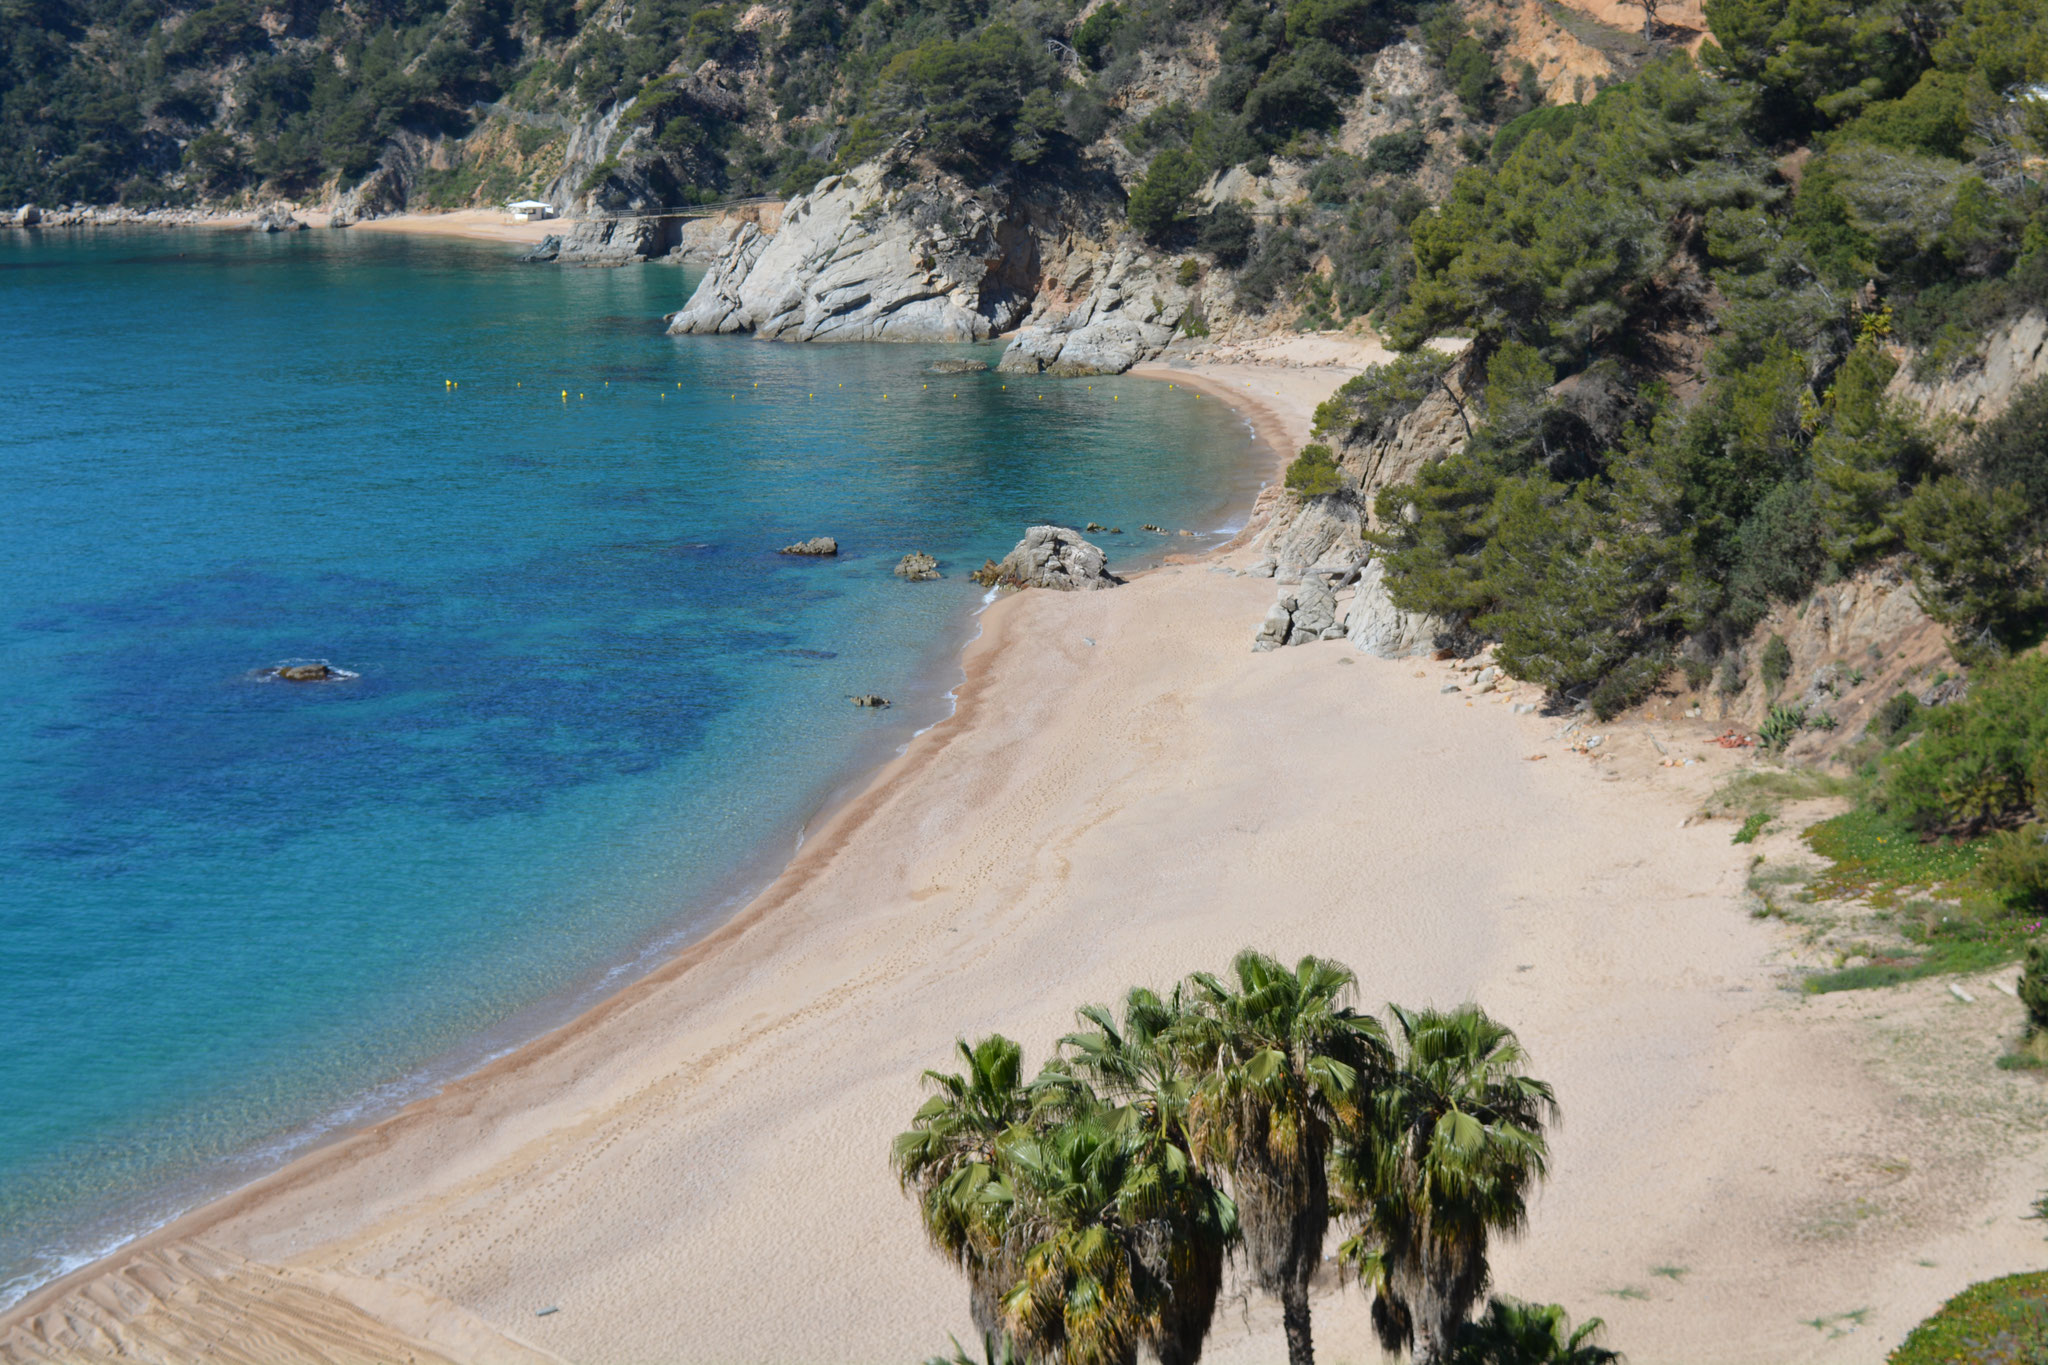 Cala Llevadó beach for the exclusive use of residents